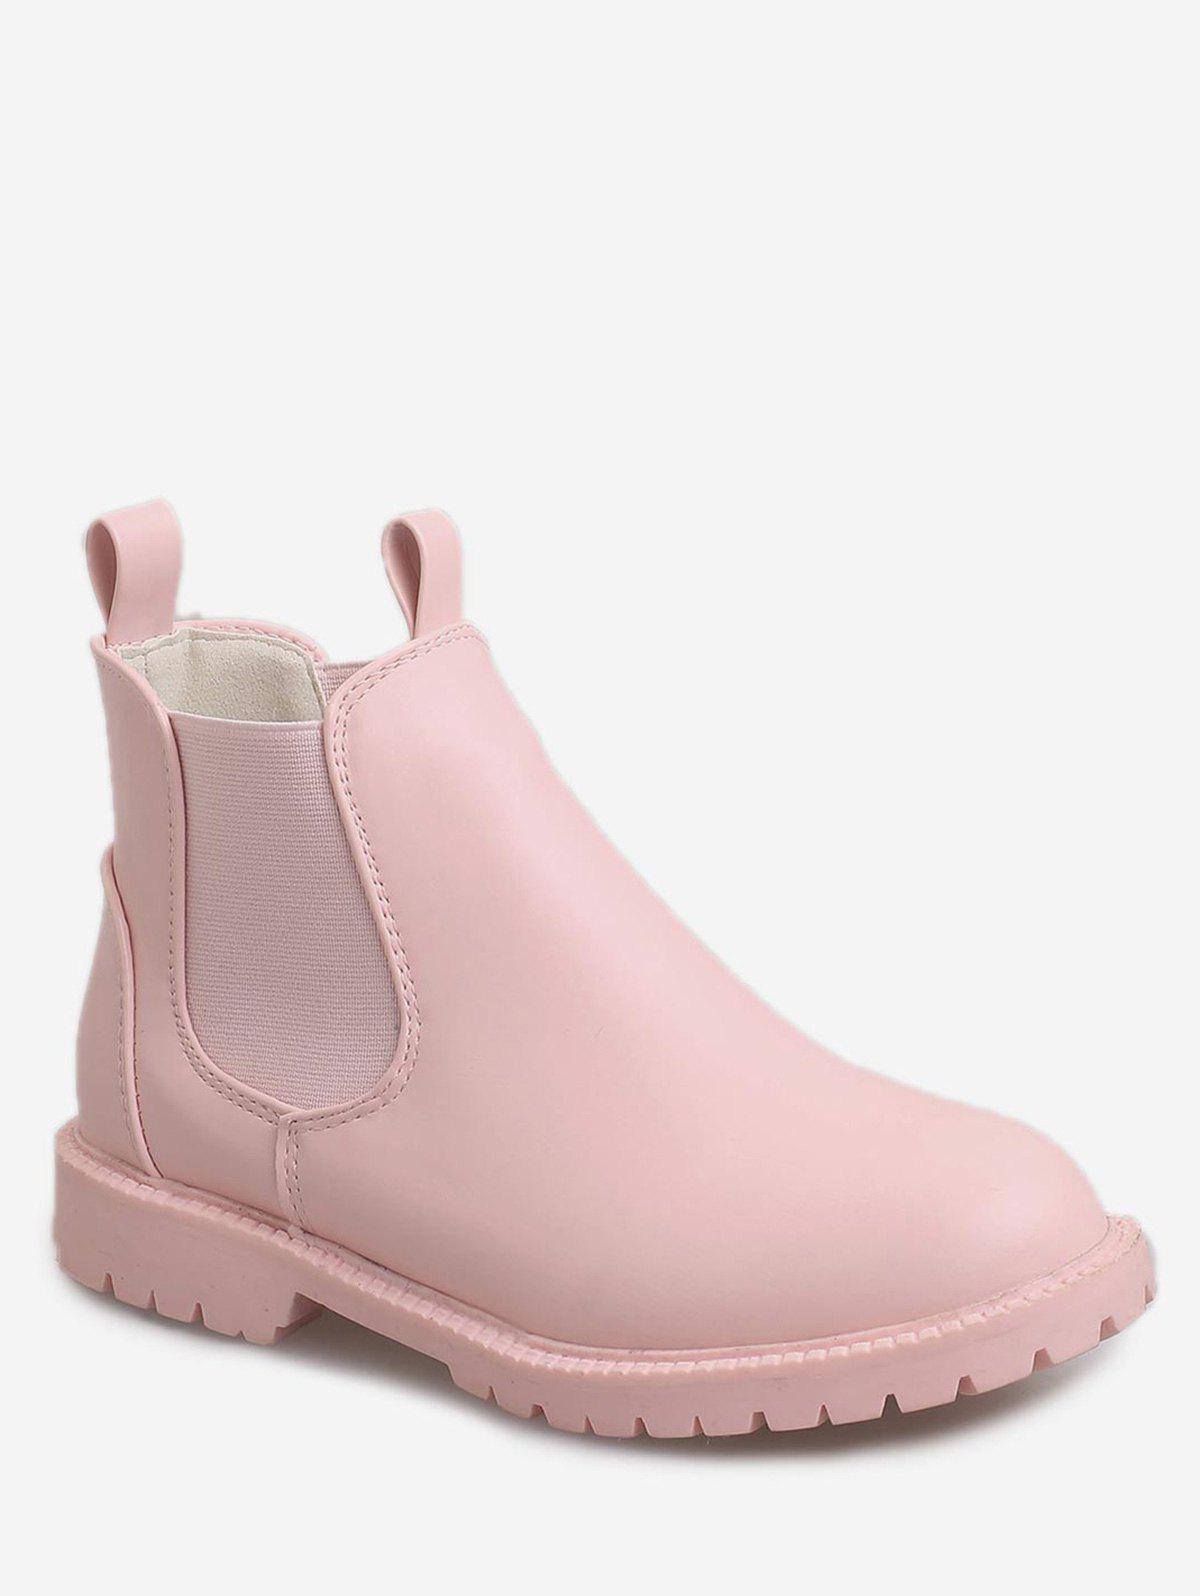 Store Round Toe PU Leather Chelsea Boots